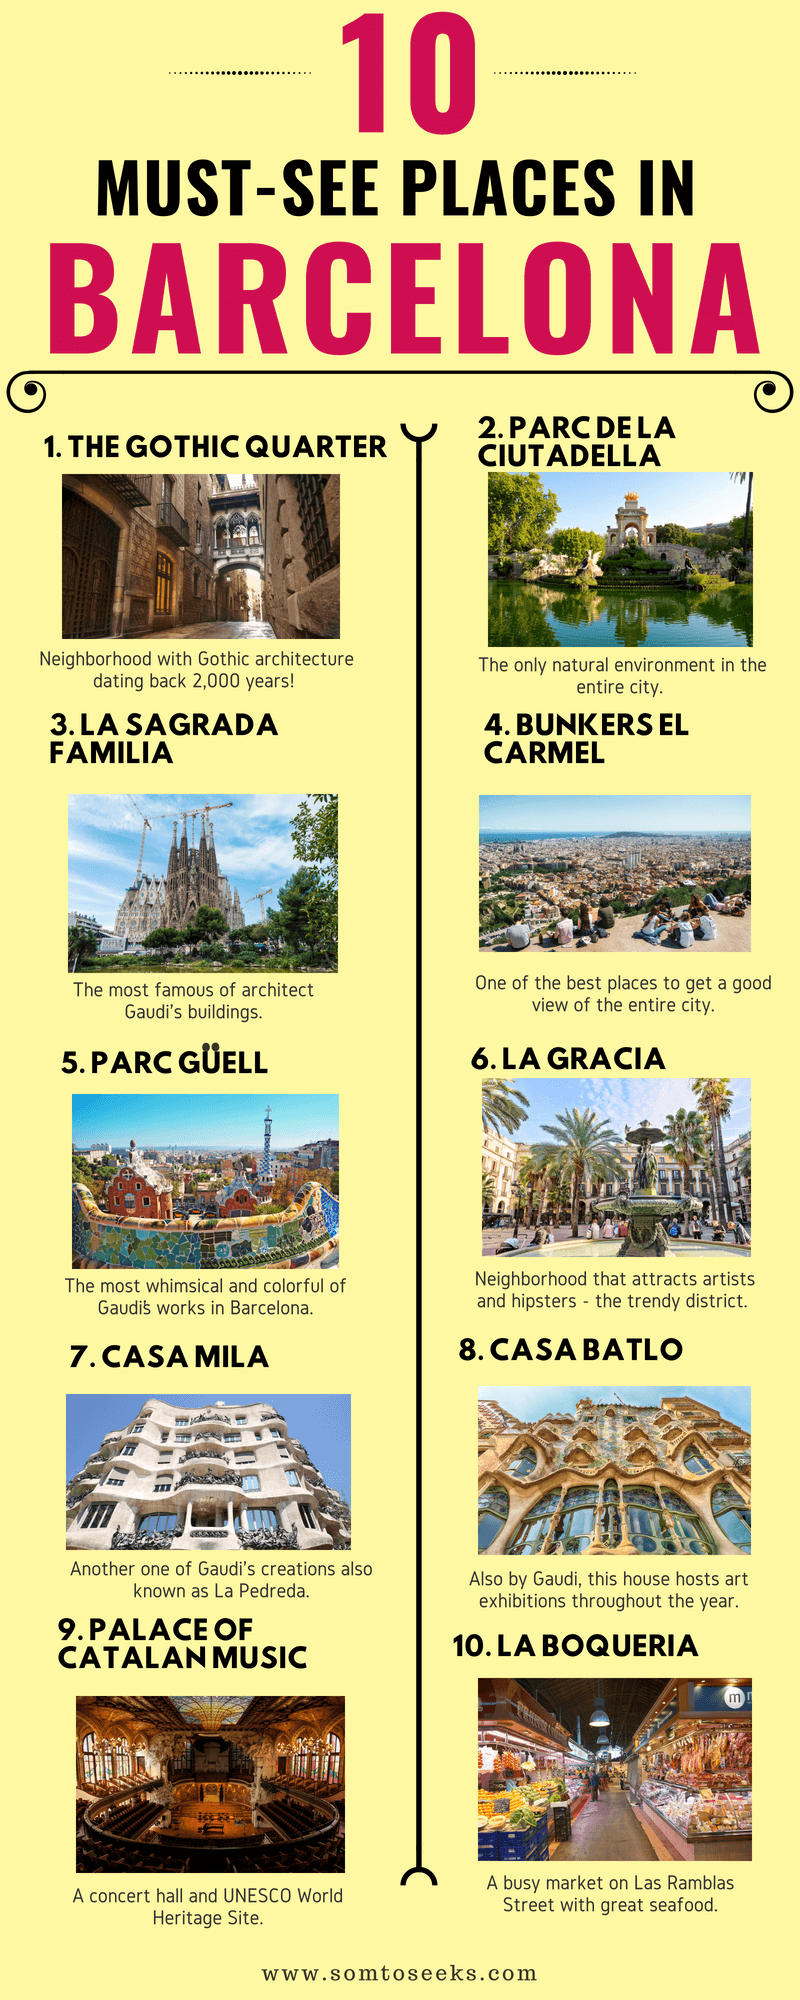 A Self Guided Walking Tour of Barcelona - 10 Must See Places Infographic